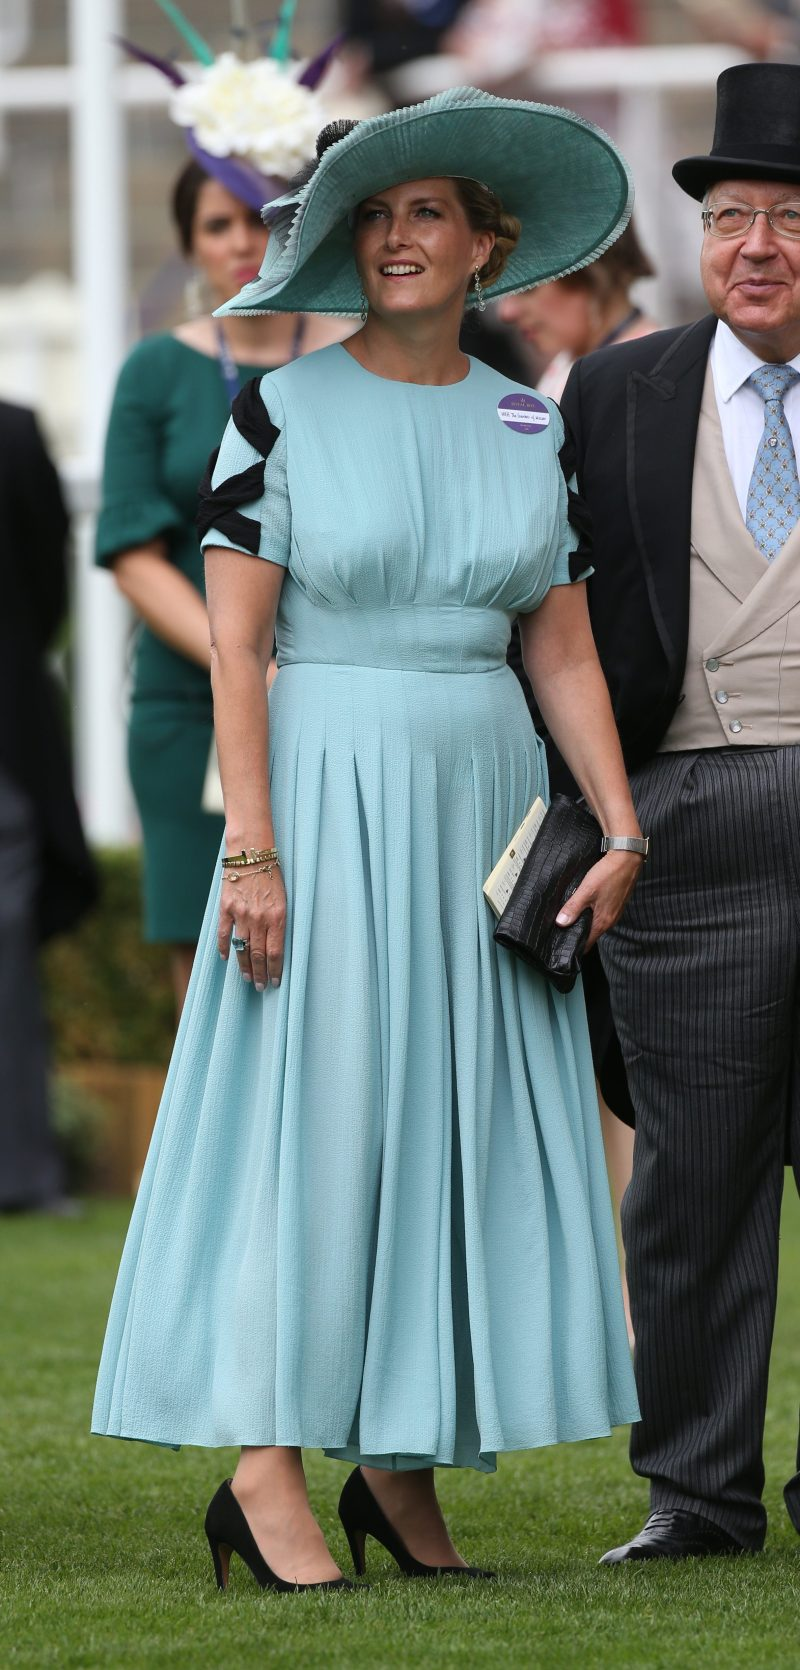 Countess of Wessex in pale blue Emilia Wickstead jumpsuit for Royal Ascot day 2 - Replicate Royalty